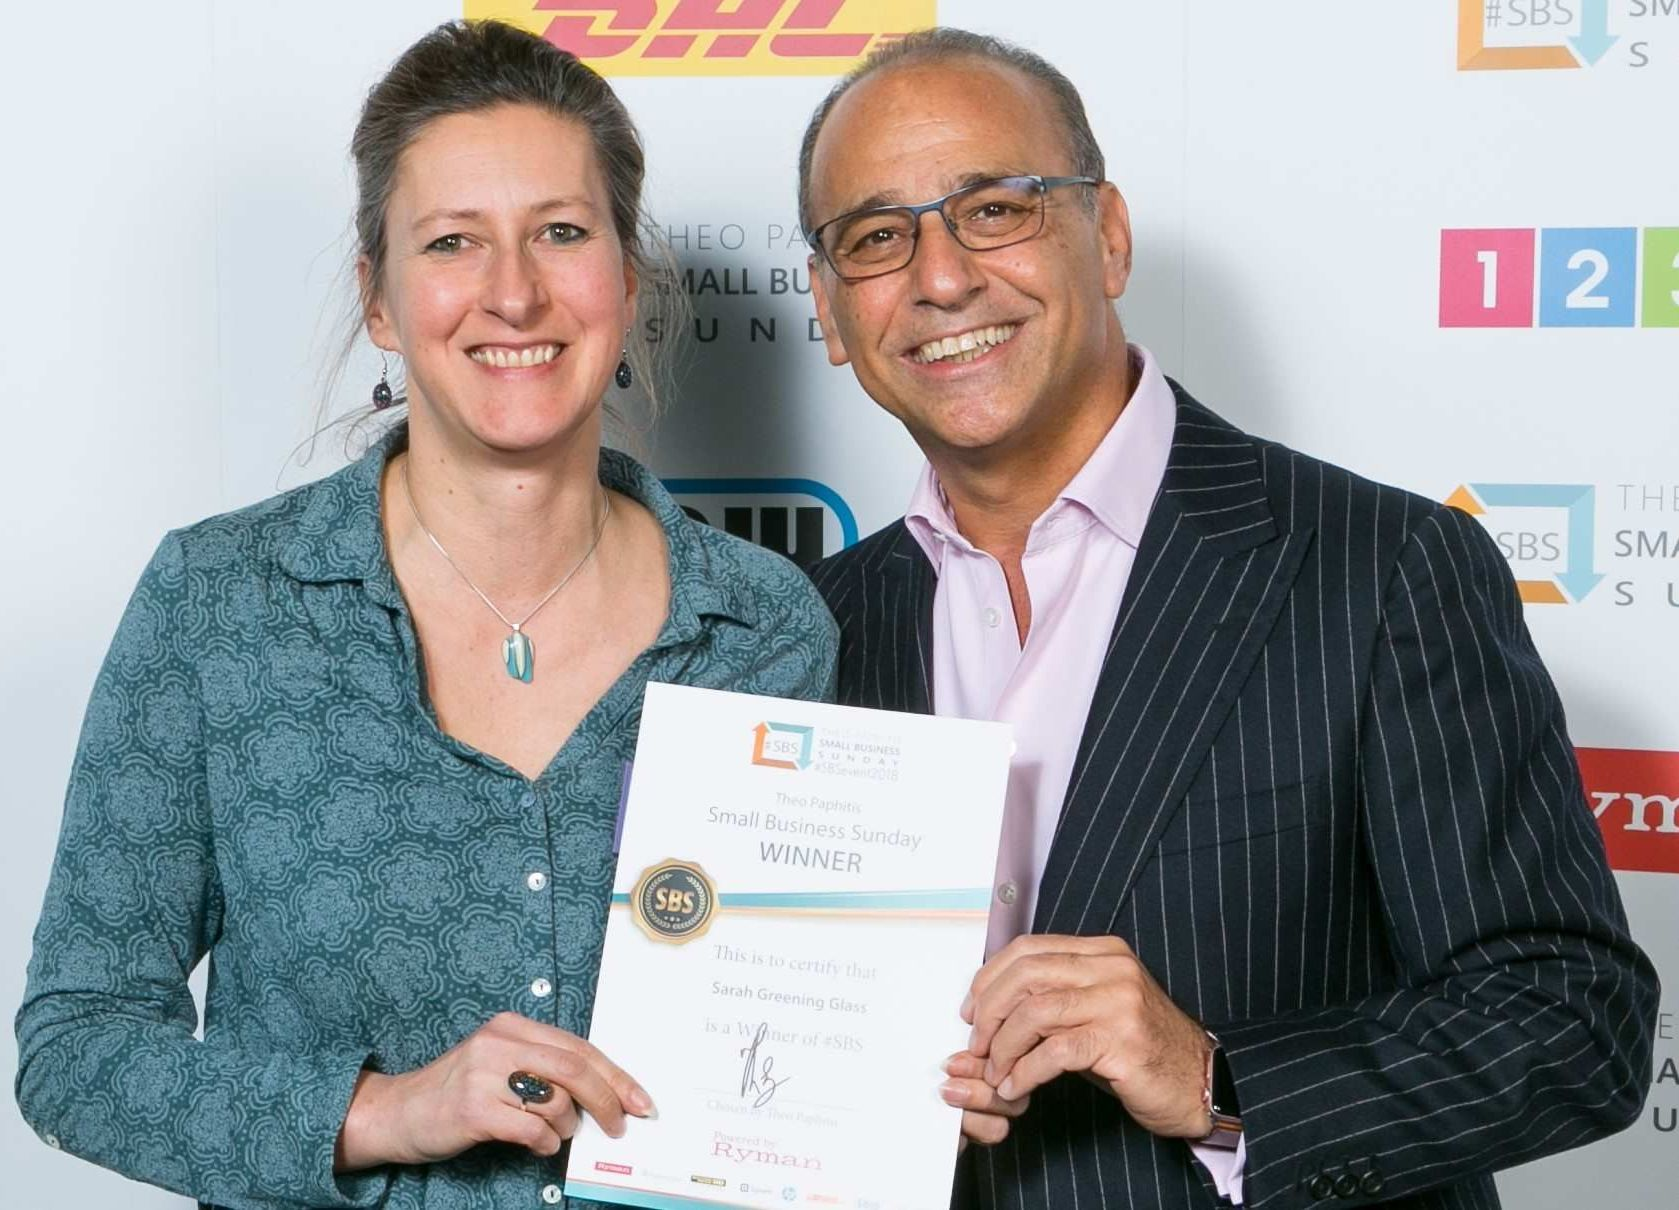 Award-winning business - Theo Paphitis from BBC's Dragon's Den after he gave me a small business award in 2017